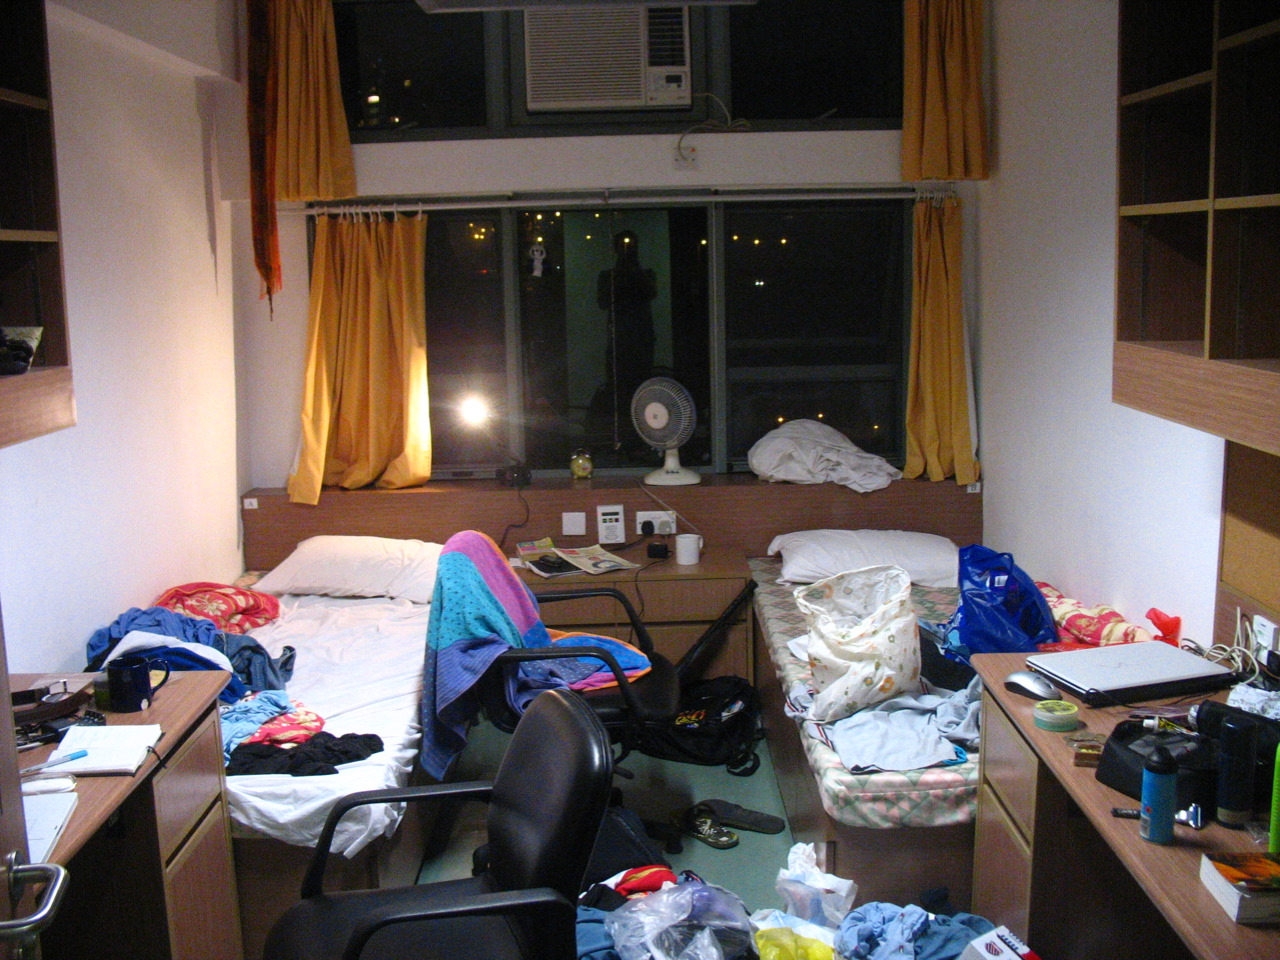 A Messy Room 1004